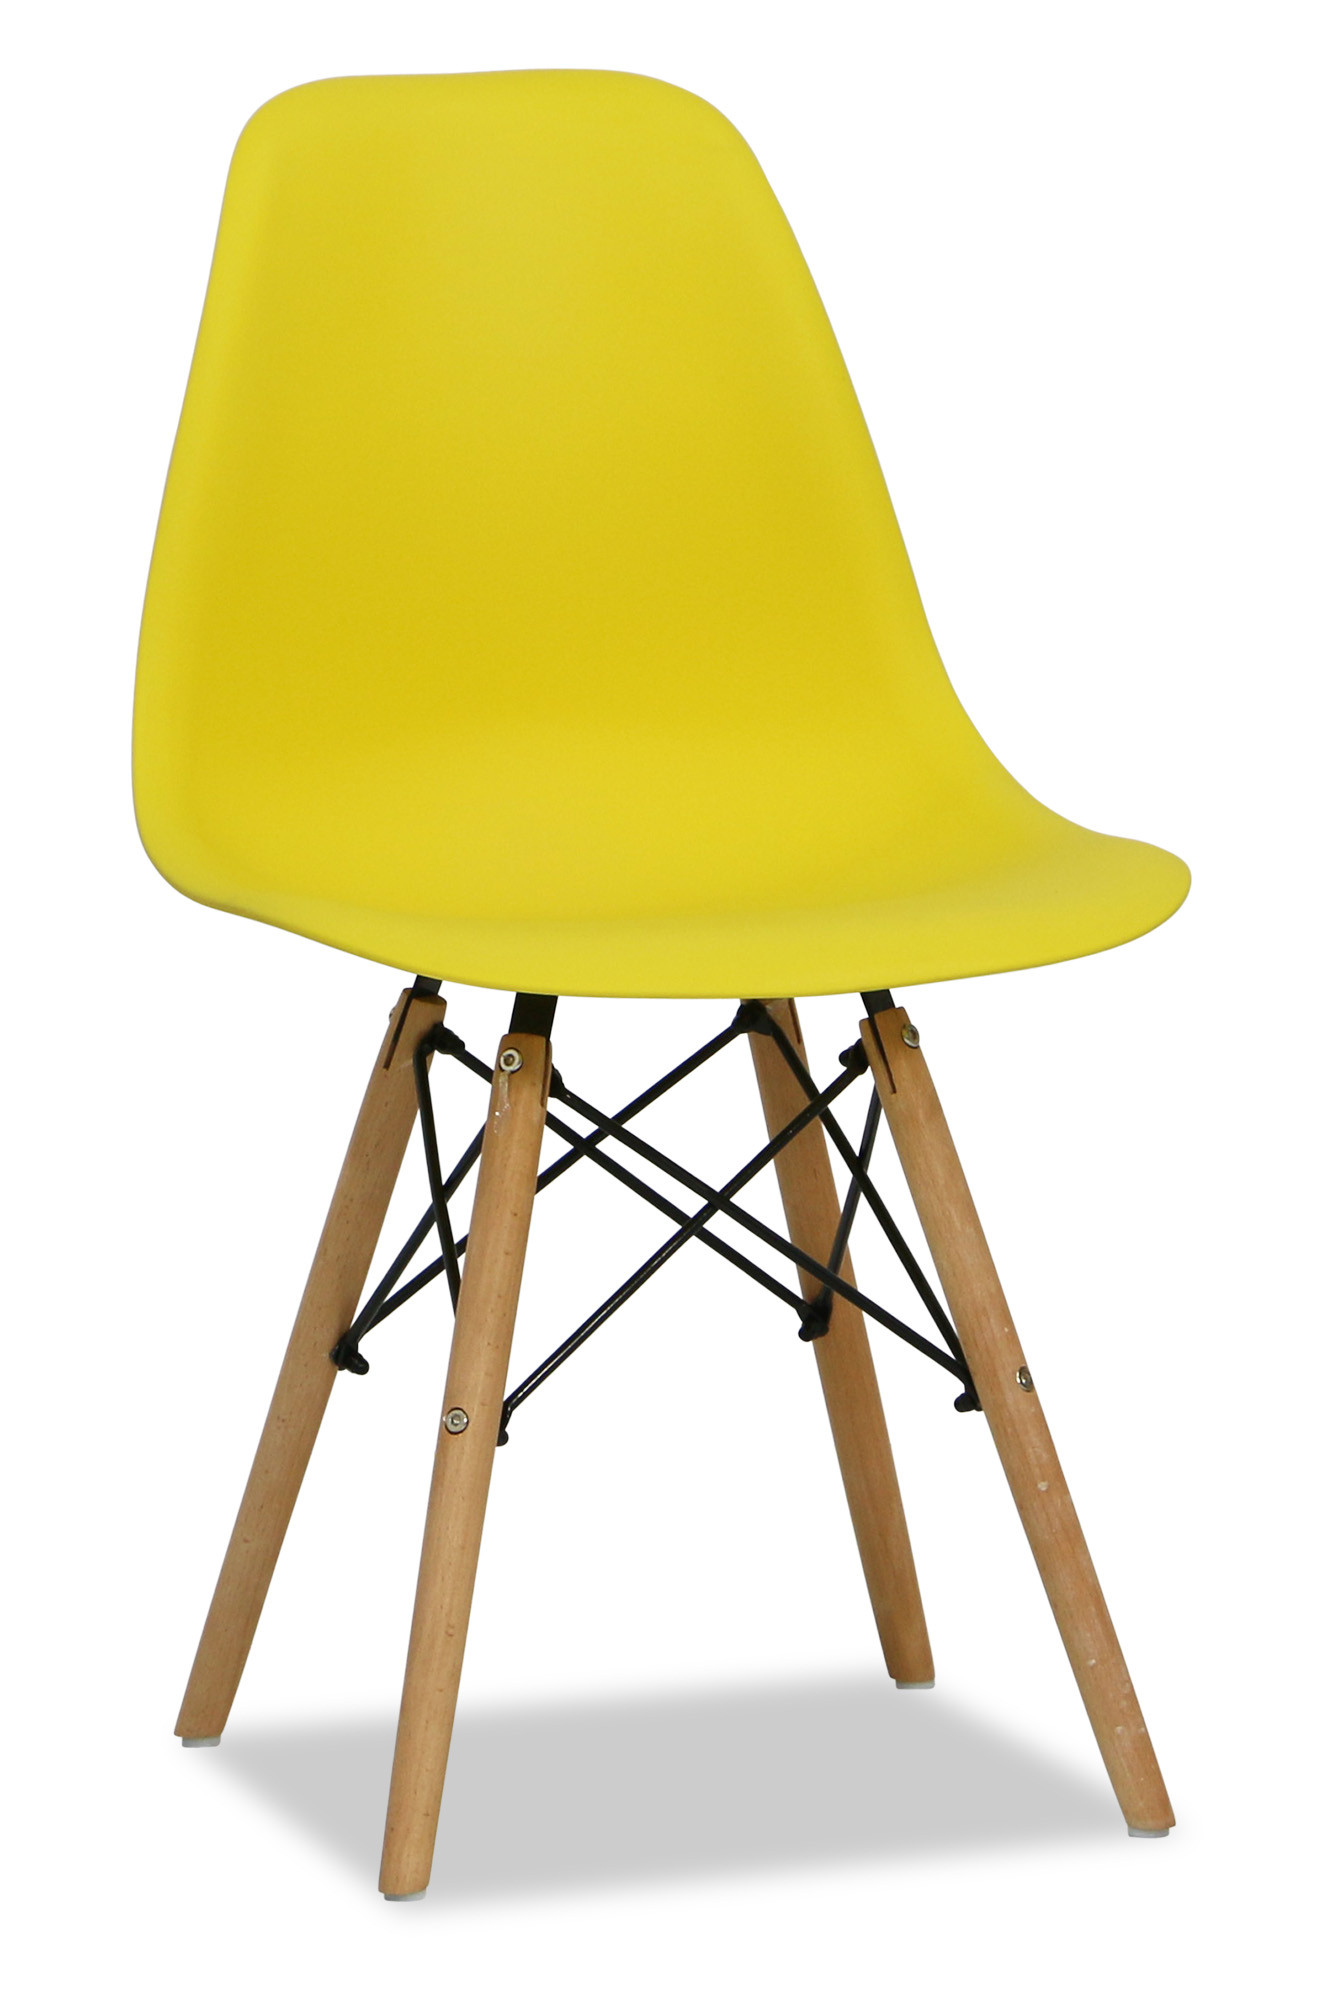 Eames yellow replica designer chair designer chairs for Designer sofa replica